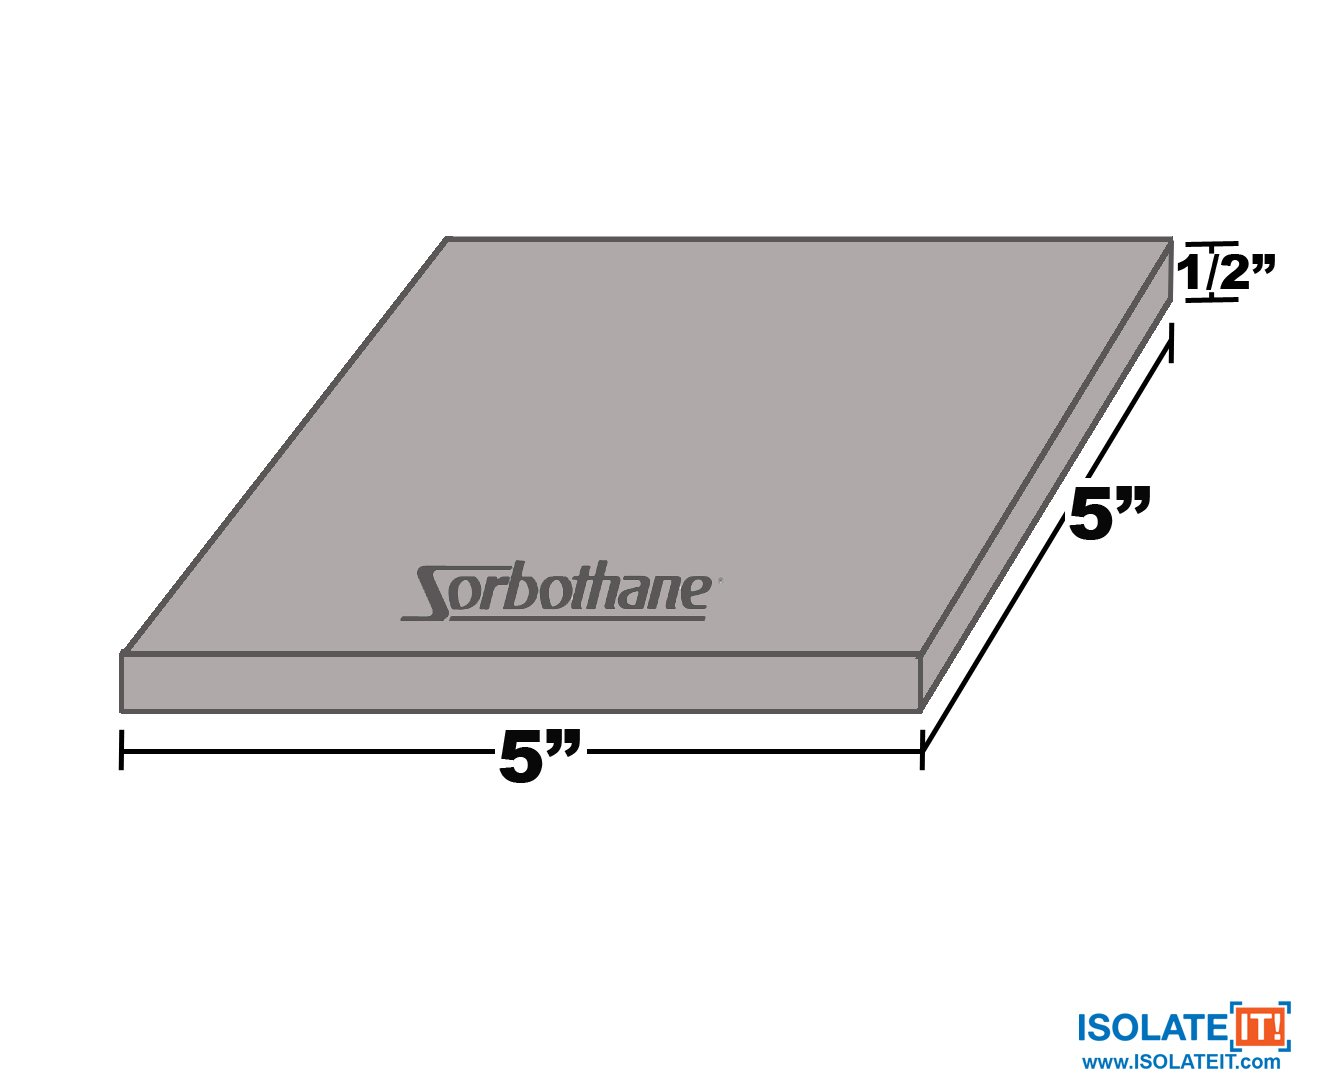 Isolate It: Sorbothane Vibration Isolation Square Pad 50 Duro (.50'' Thick 5'' x 5'') 2-Pack by Isolate It! (Image #4)